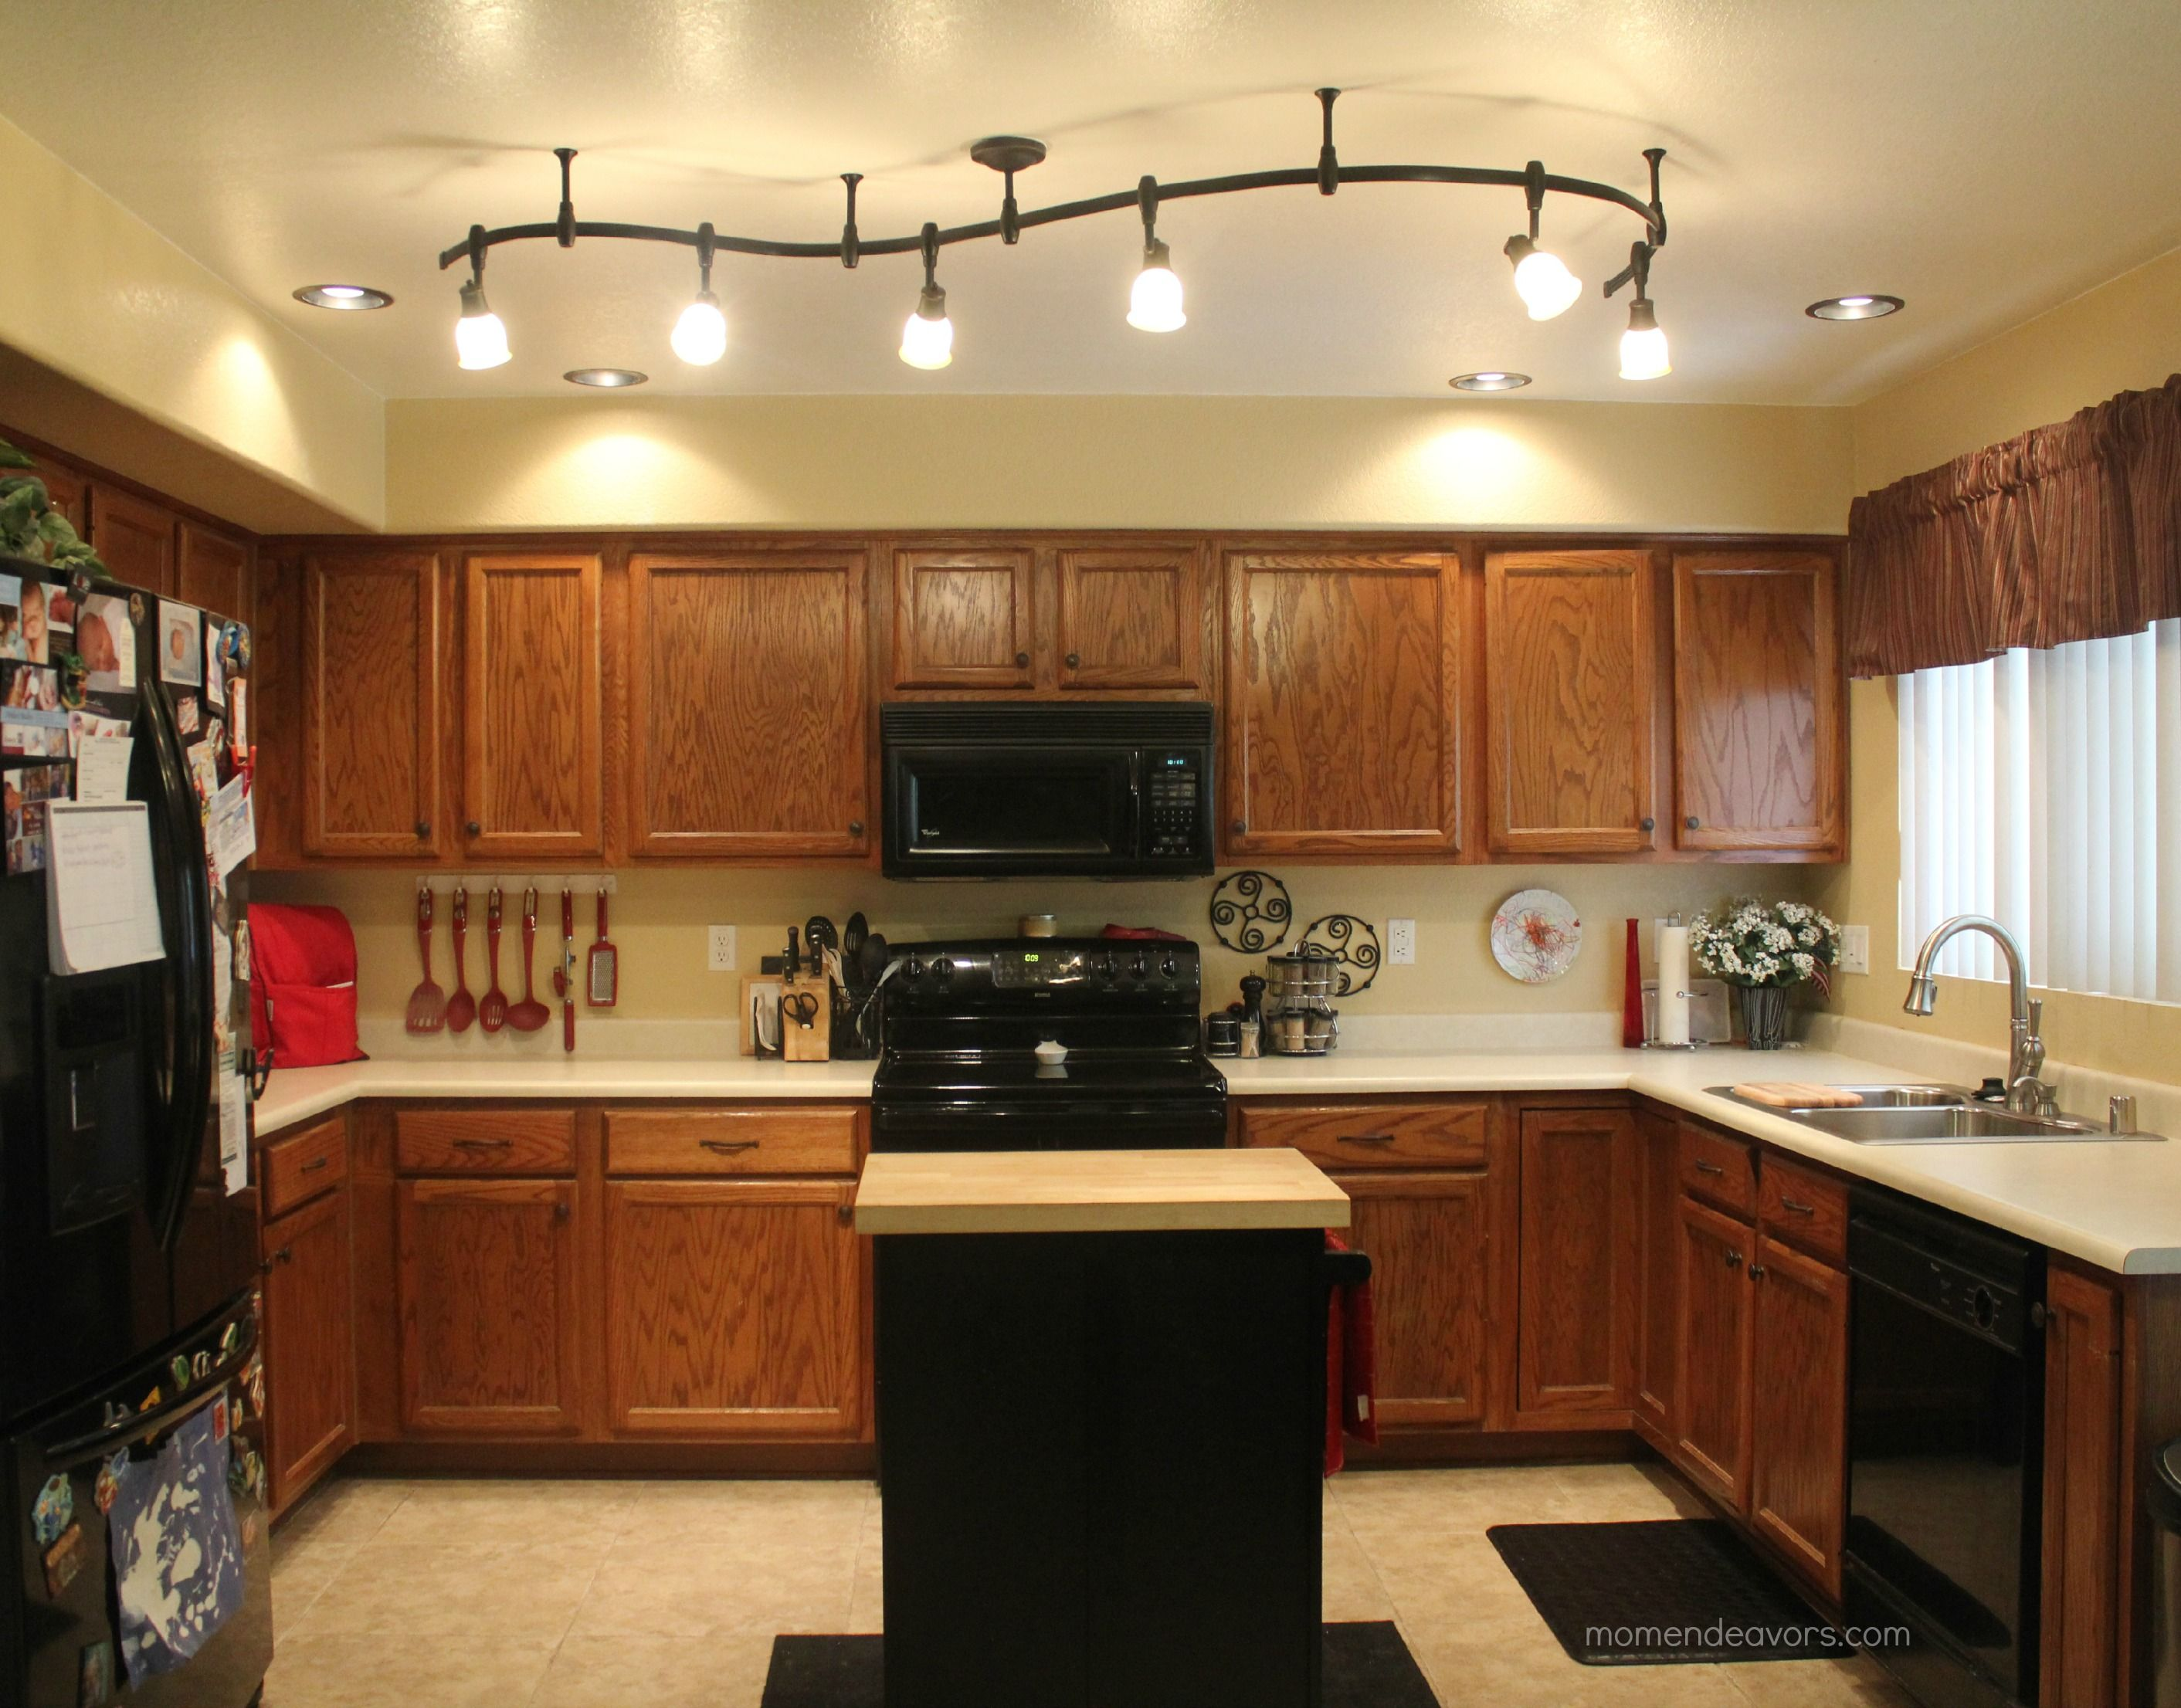 Led Kitchen Lighting 17 Best Ideas About Kitchen Track Lighting On Pinterest